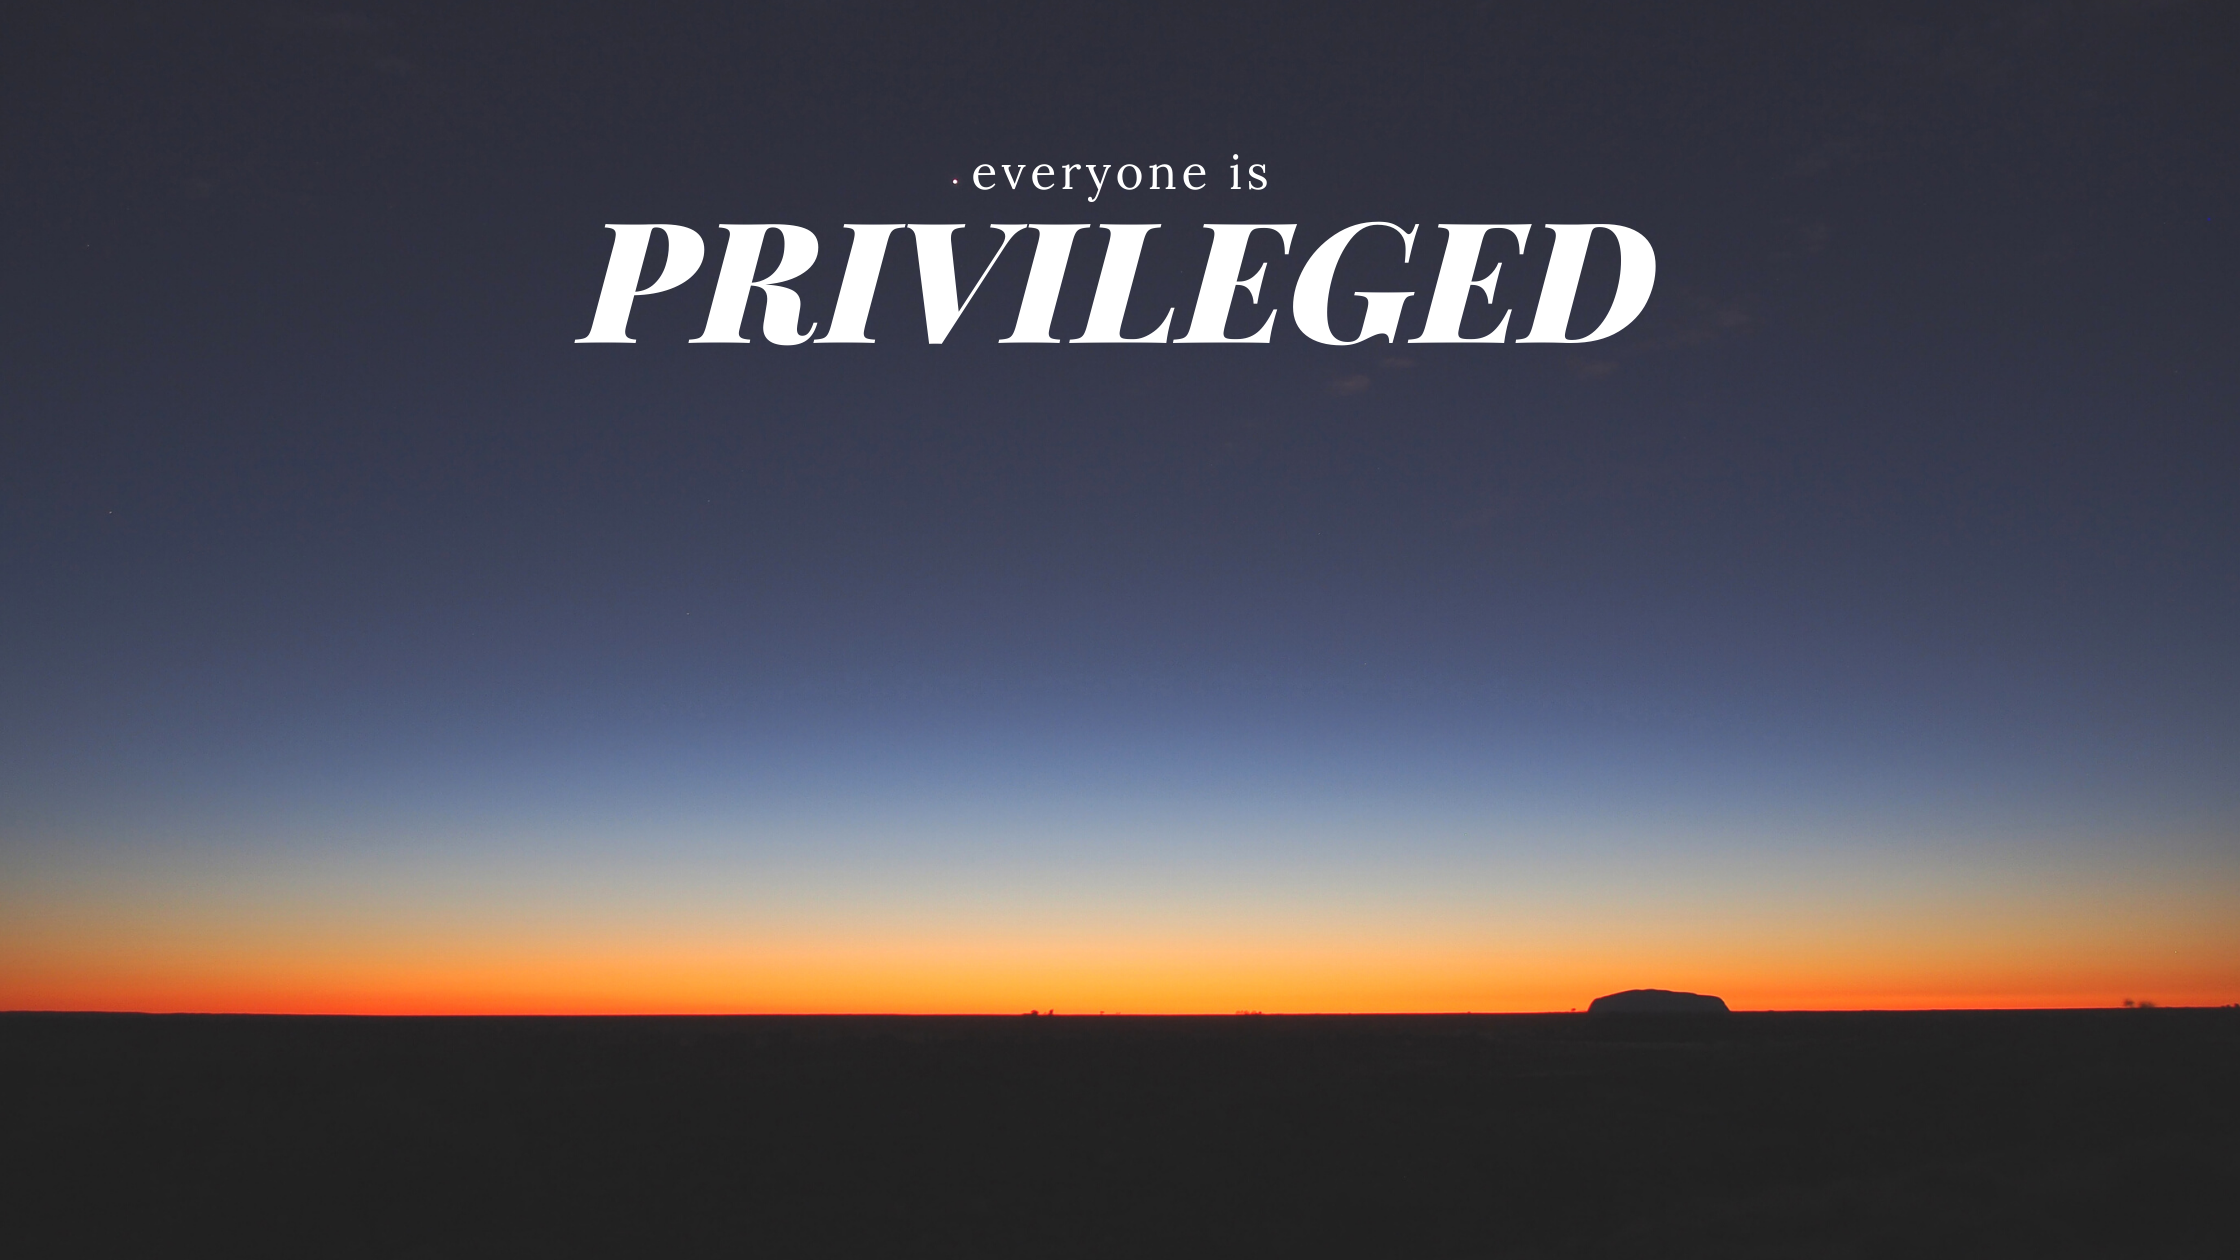 Everyone is privileged